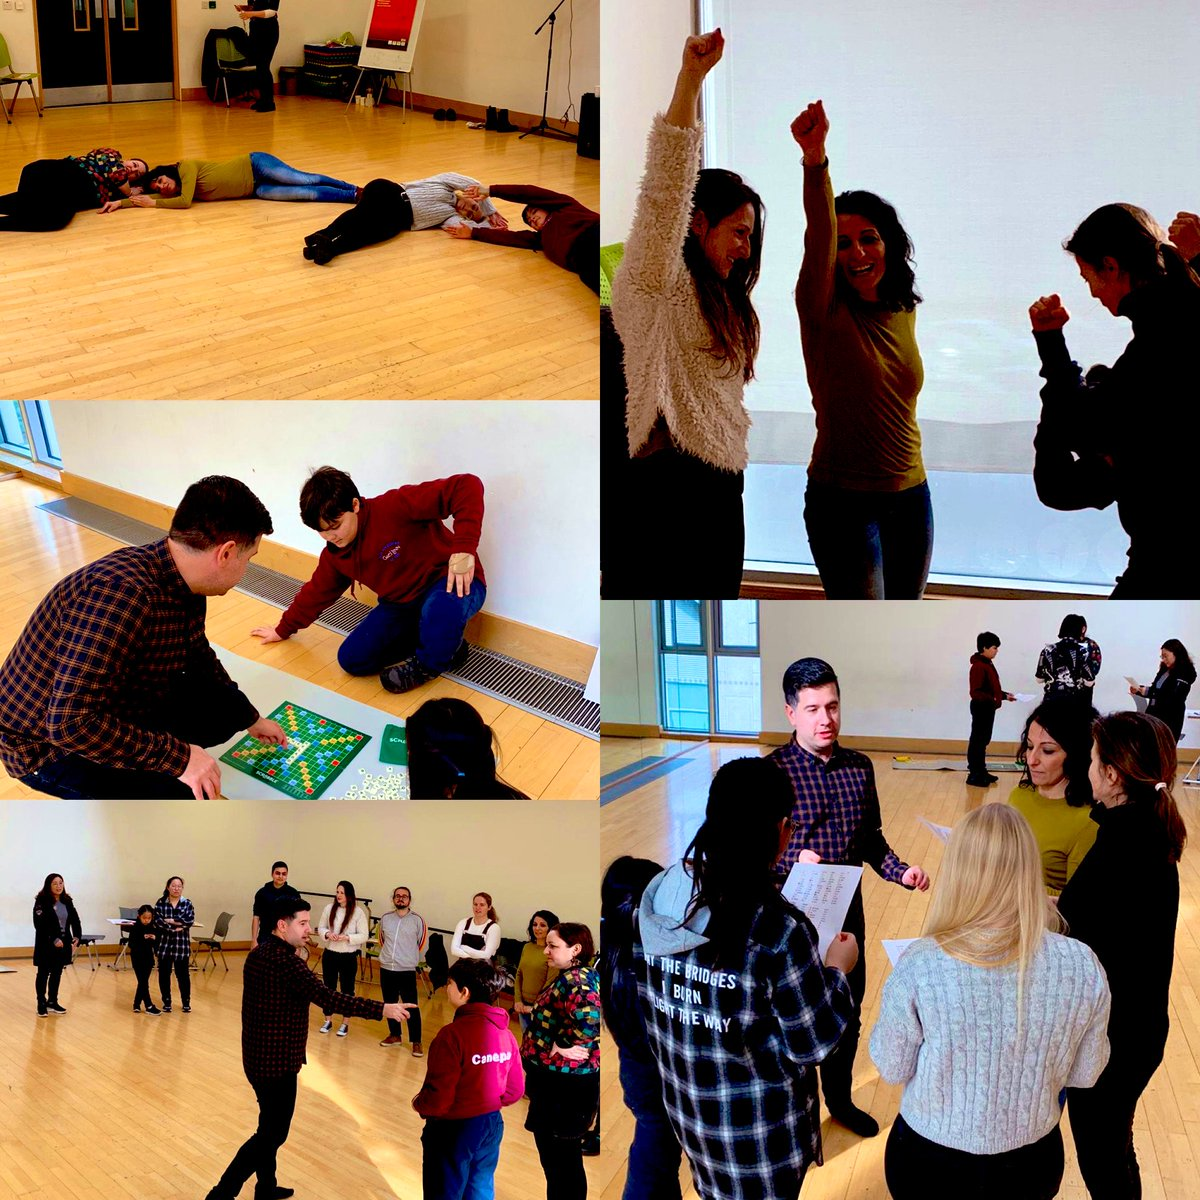 Had a fantastic time getting multilingually creative yesterday @MotherTonguesIE Festival in #Dublin with our @creativelangs workshop. So many languages, ages + backgrounds in the room. Looking forward to this evening's teachers' workshop! #MTFEST2020 #MPPpic.twitter.com/FNL7vN9RJj